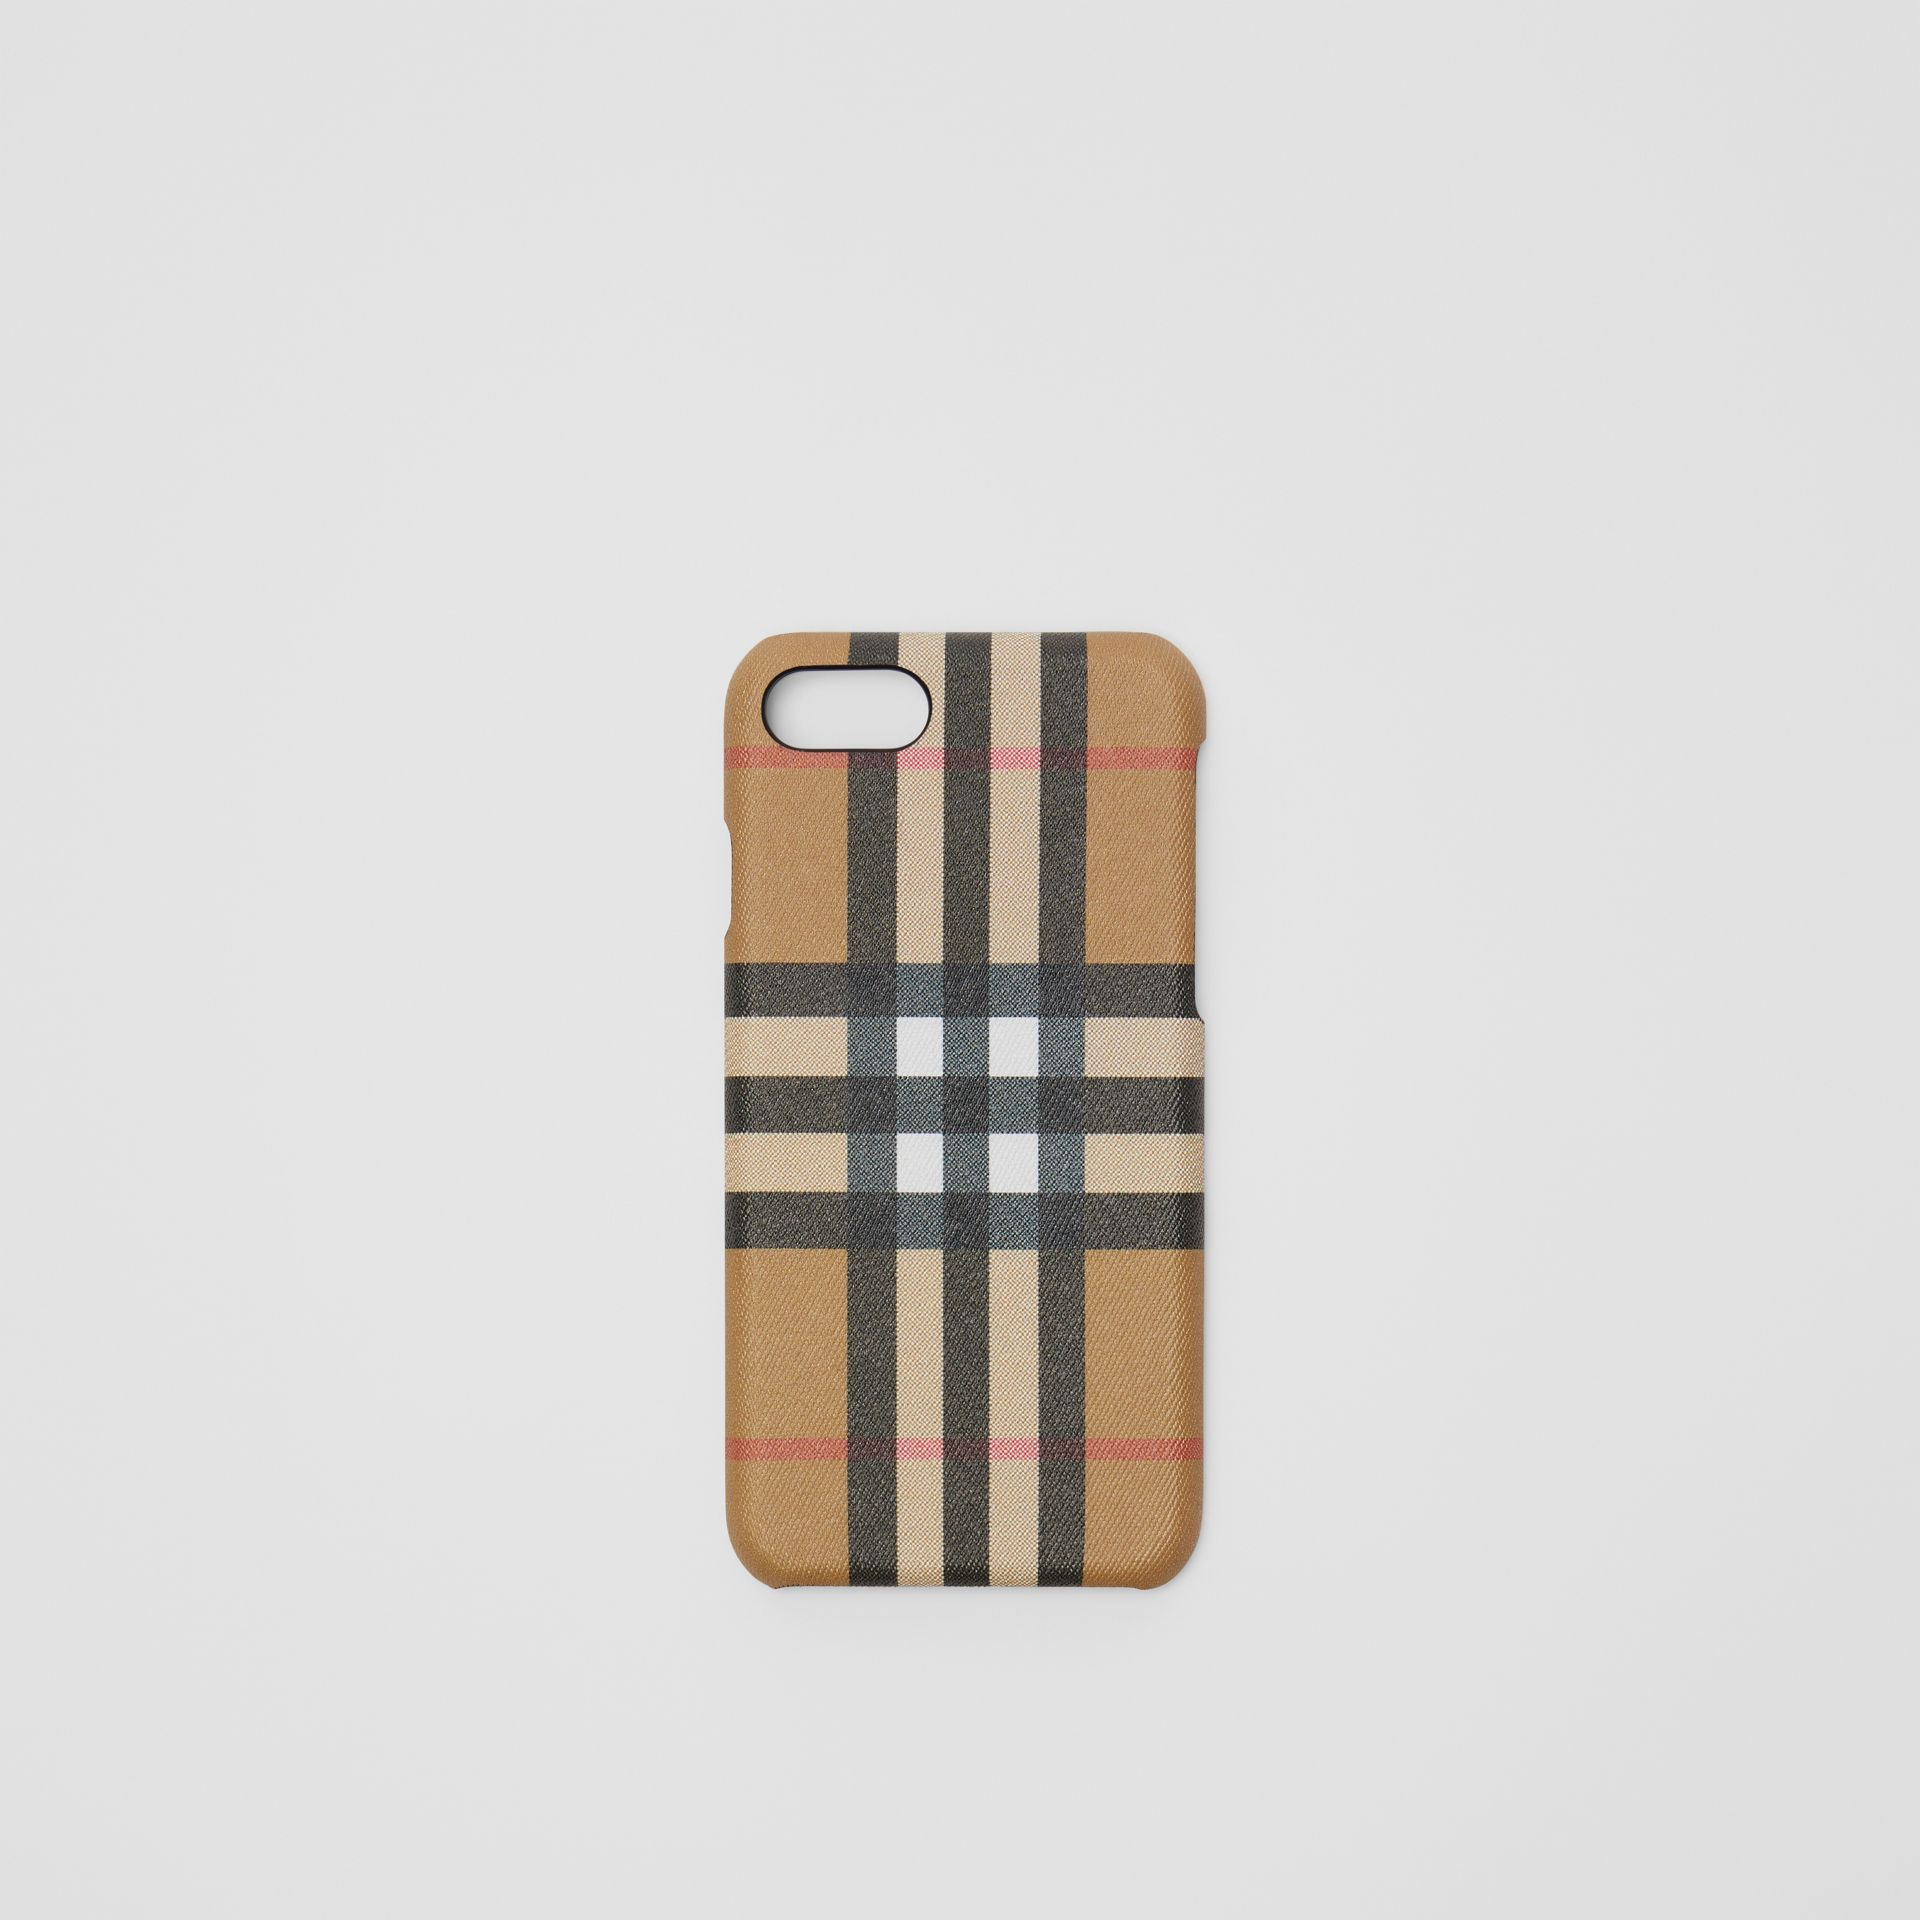 Custodia per iPhone 8 in pelle e motivo Vintage check (Nero) | Burberry - immagine della galleria 0